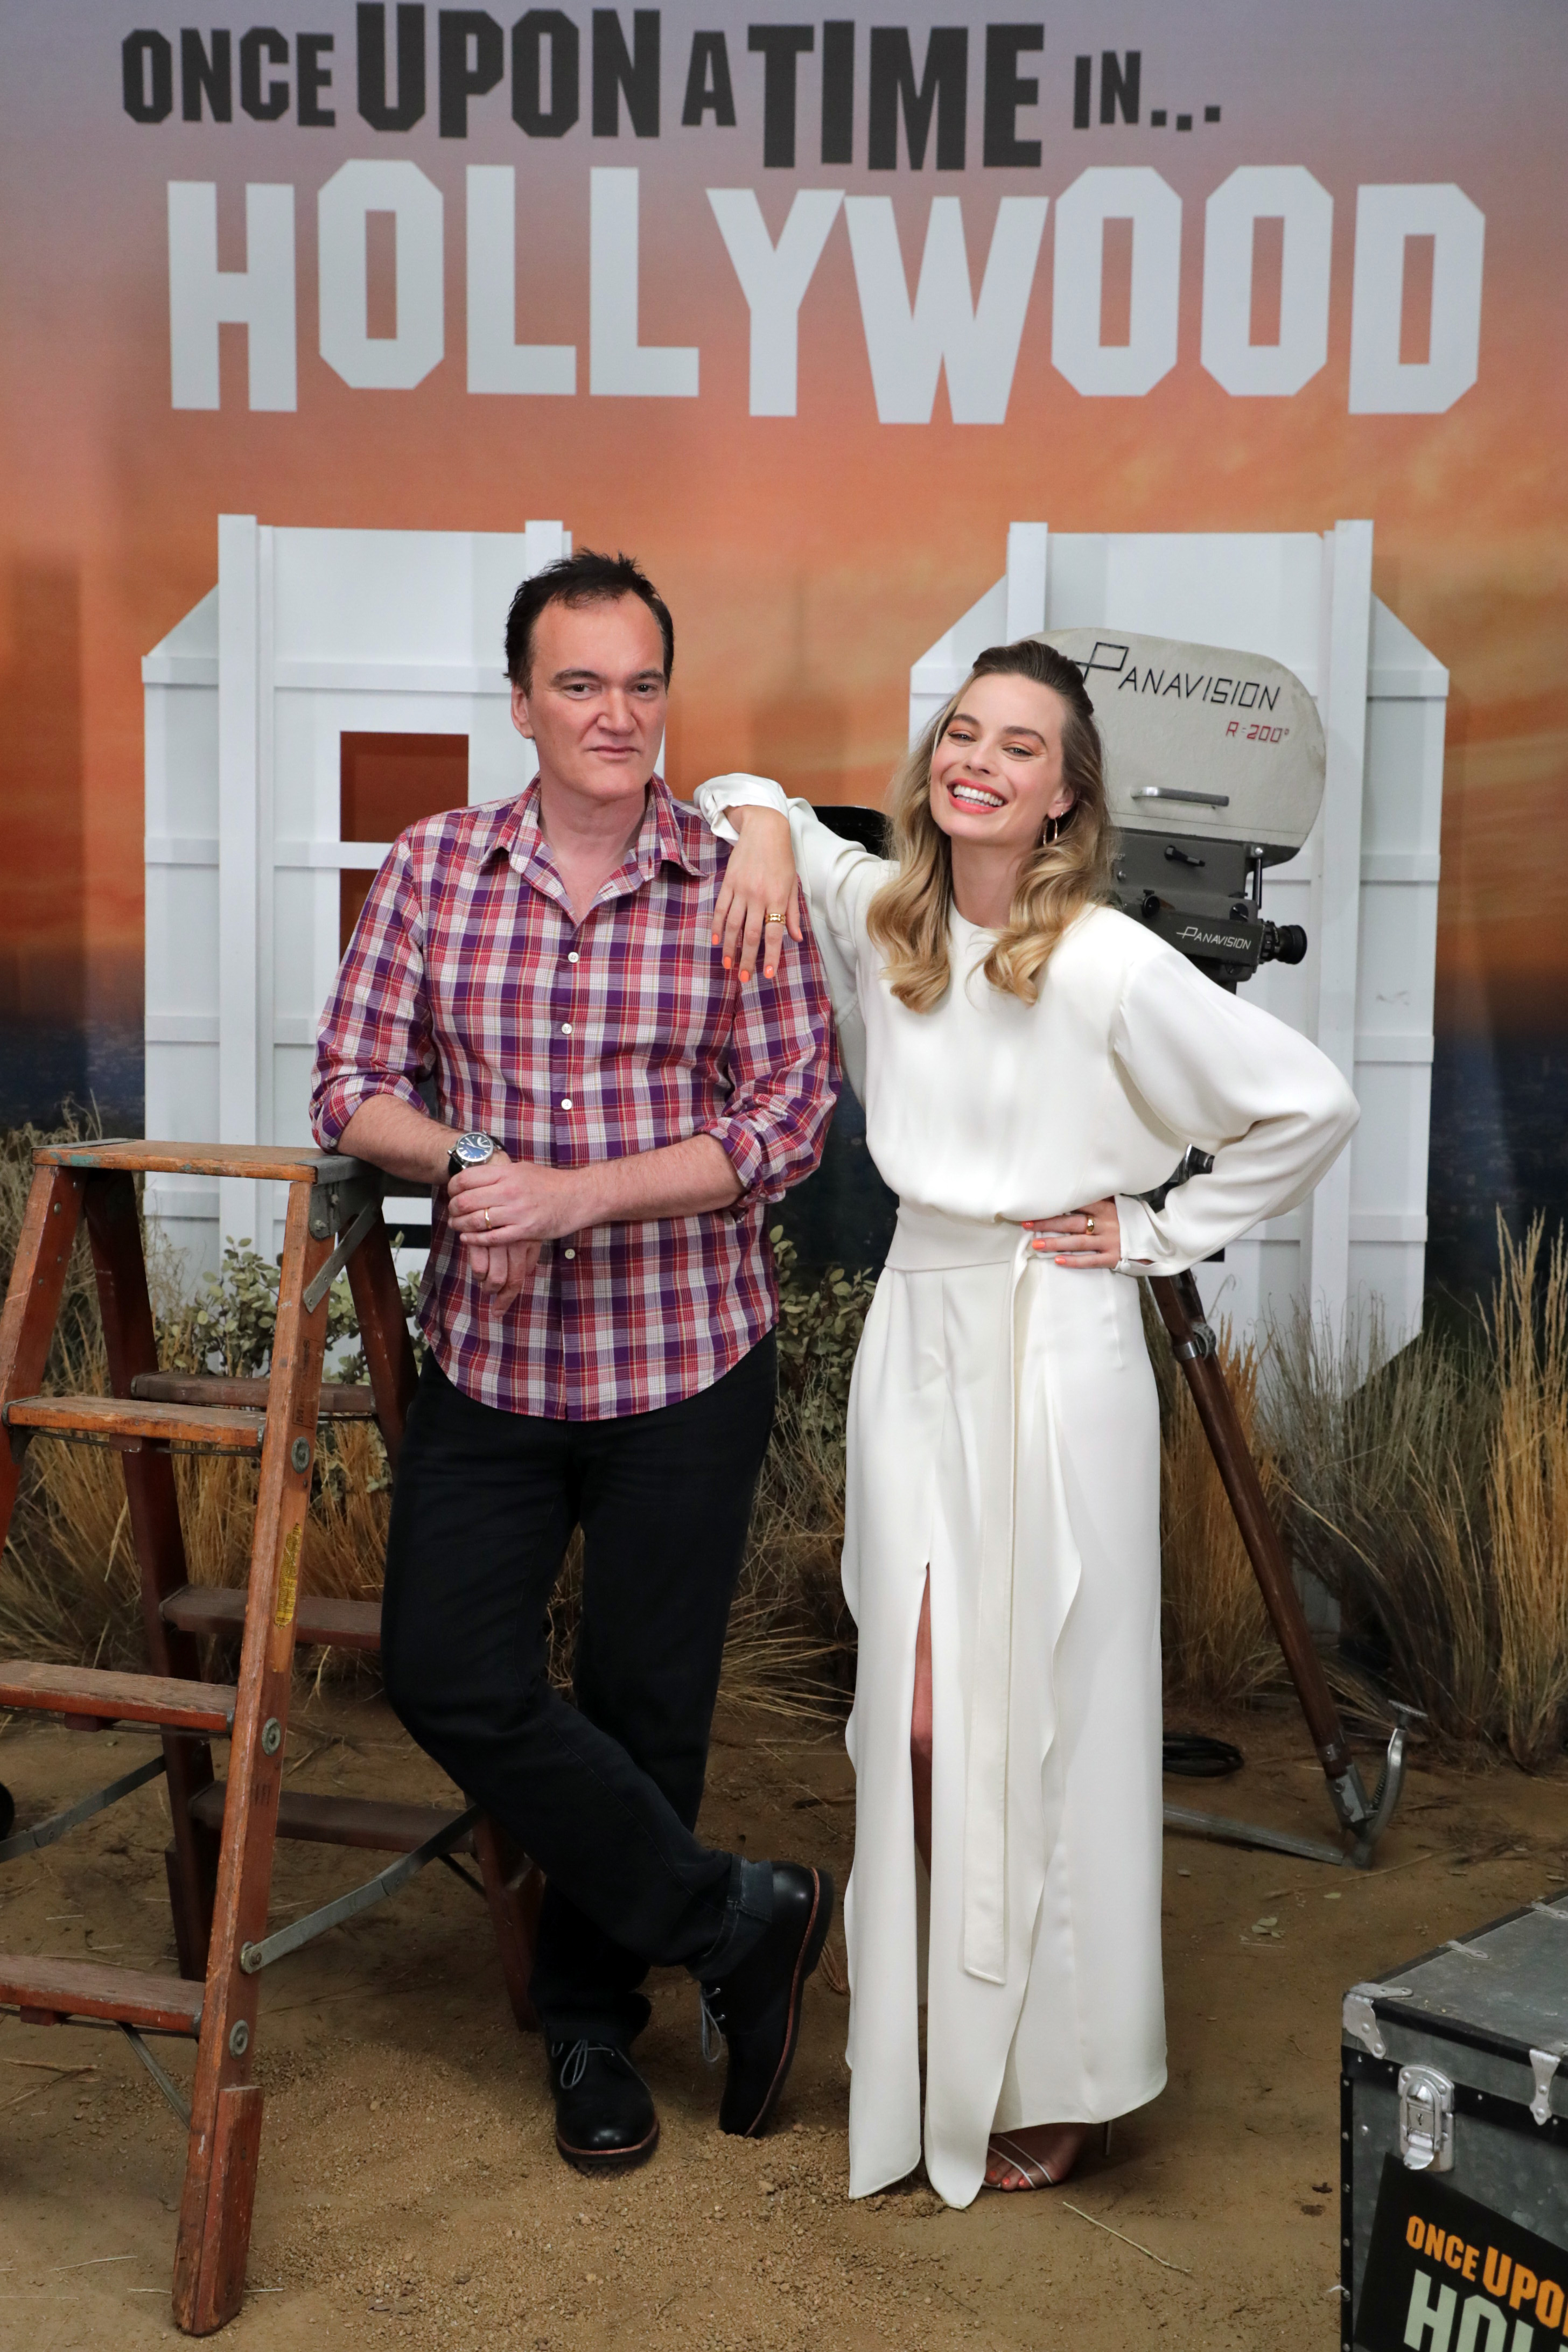 Quentin Tarantino and Margot Robbie at an event for Once Upon a Time in Hollywood (2019)